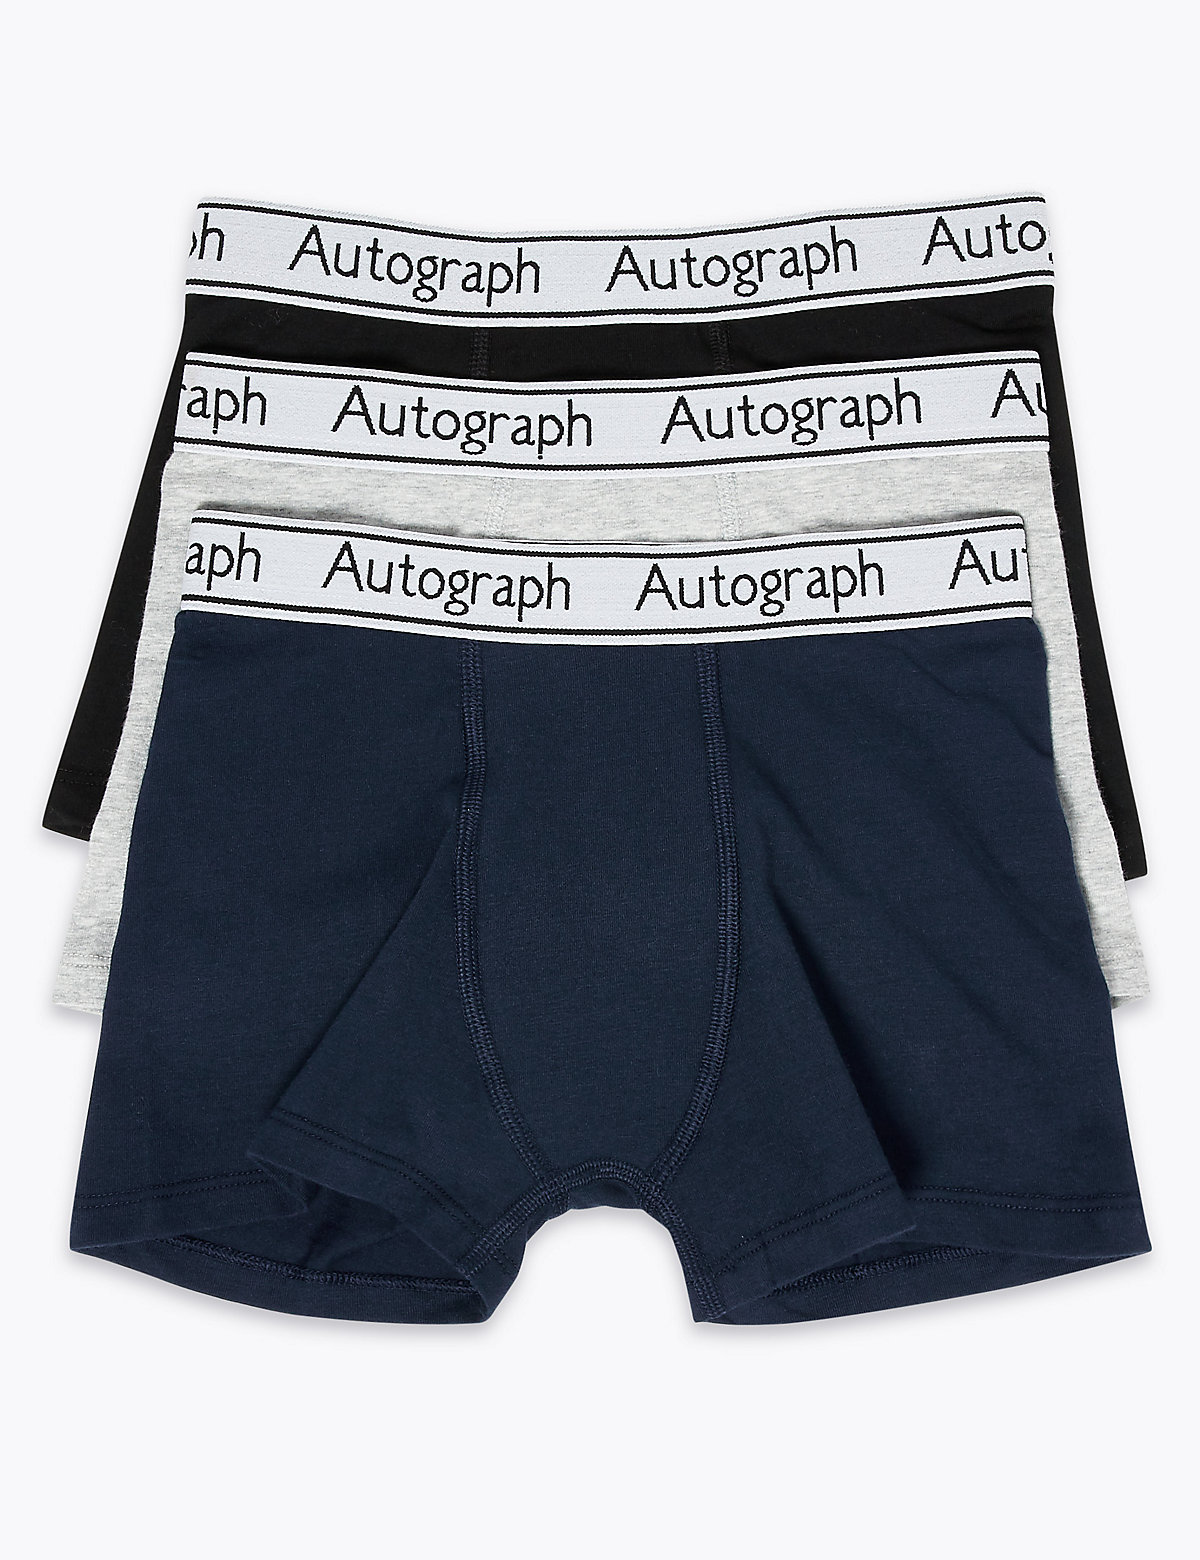 Autograph 3 Pack Cotton with Lycra Trunks